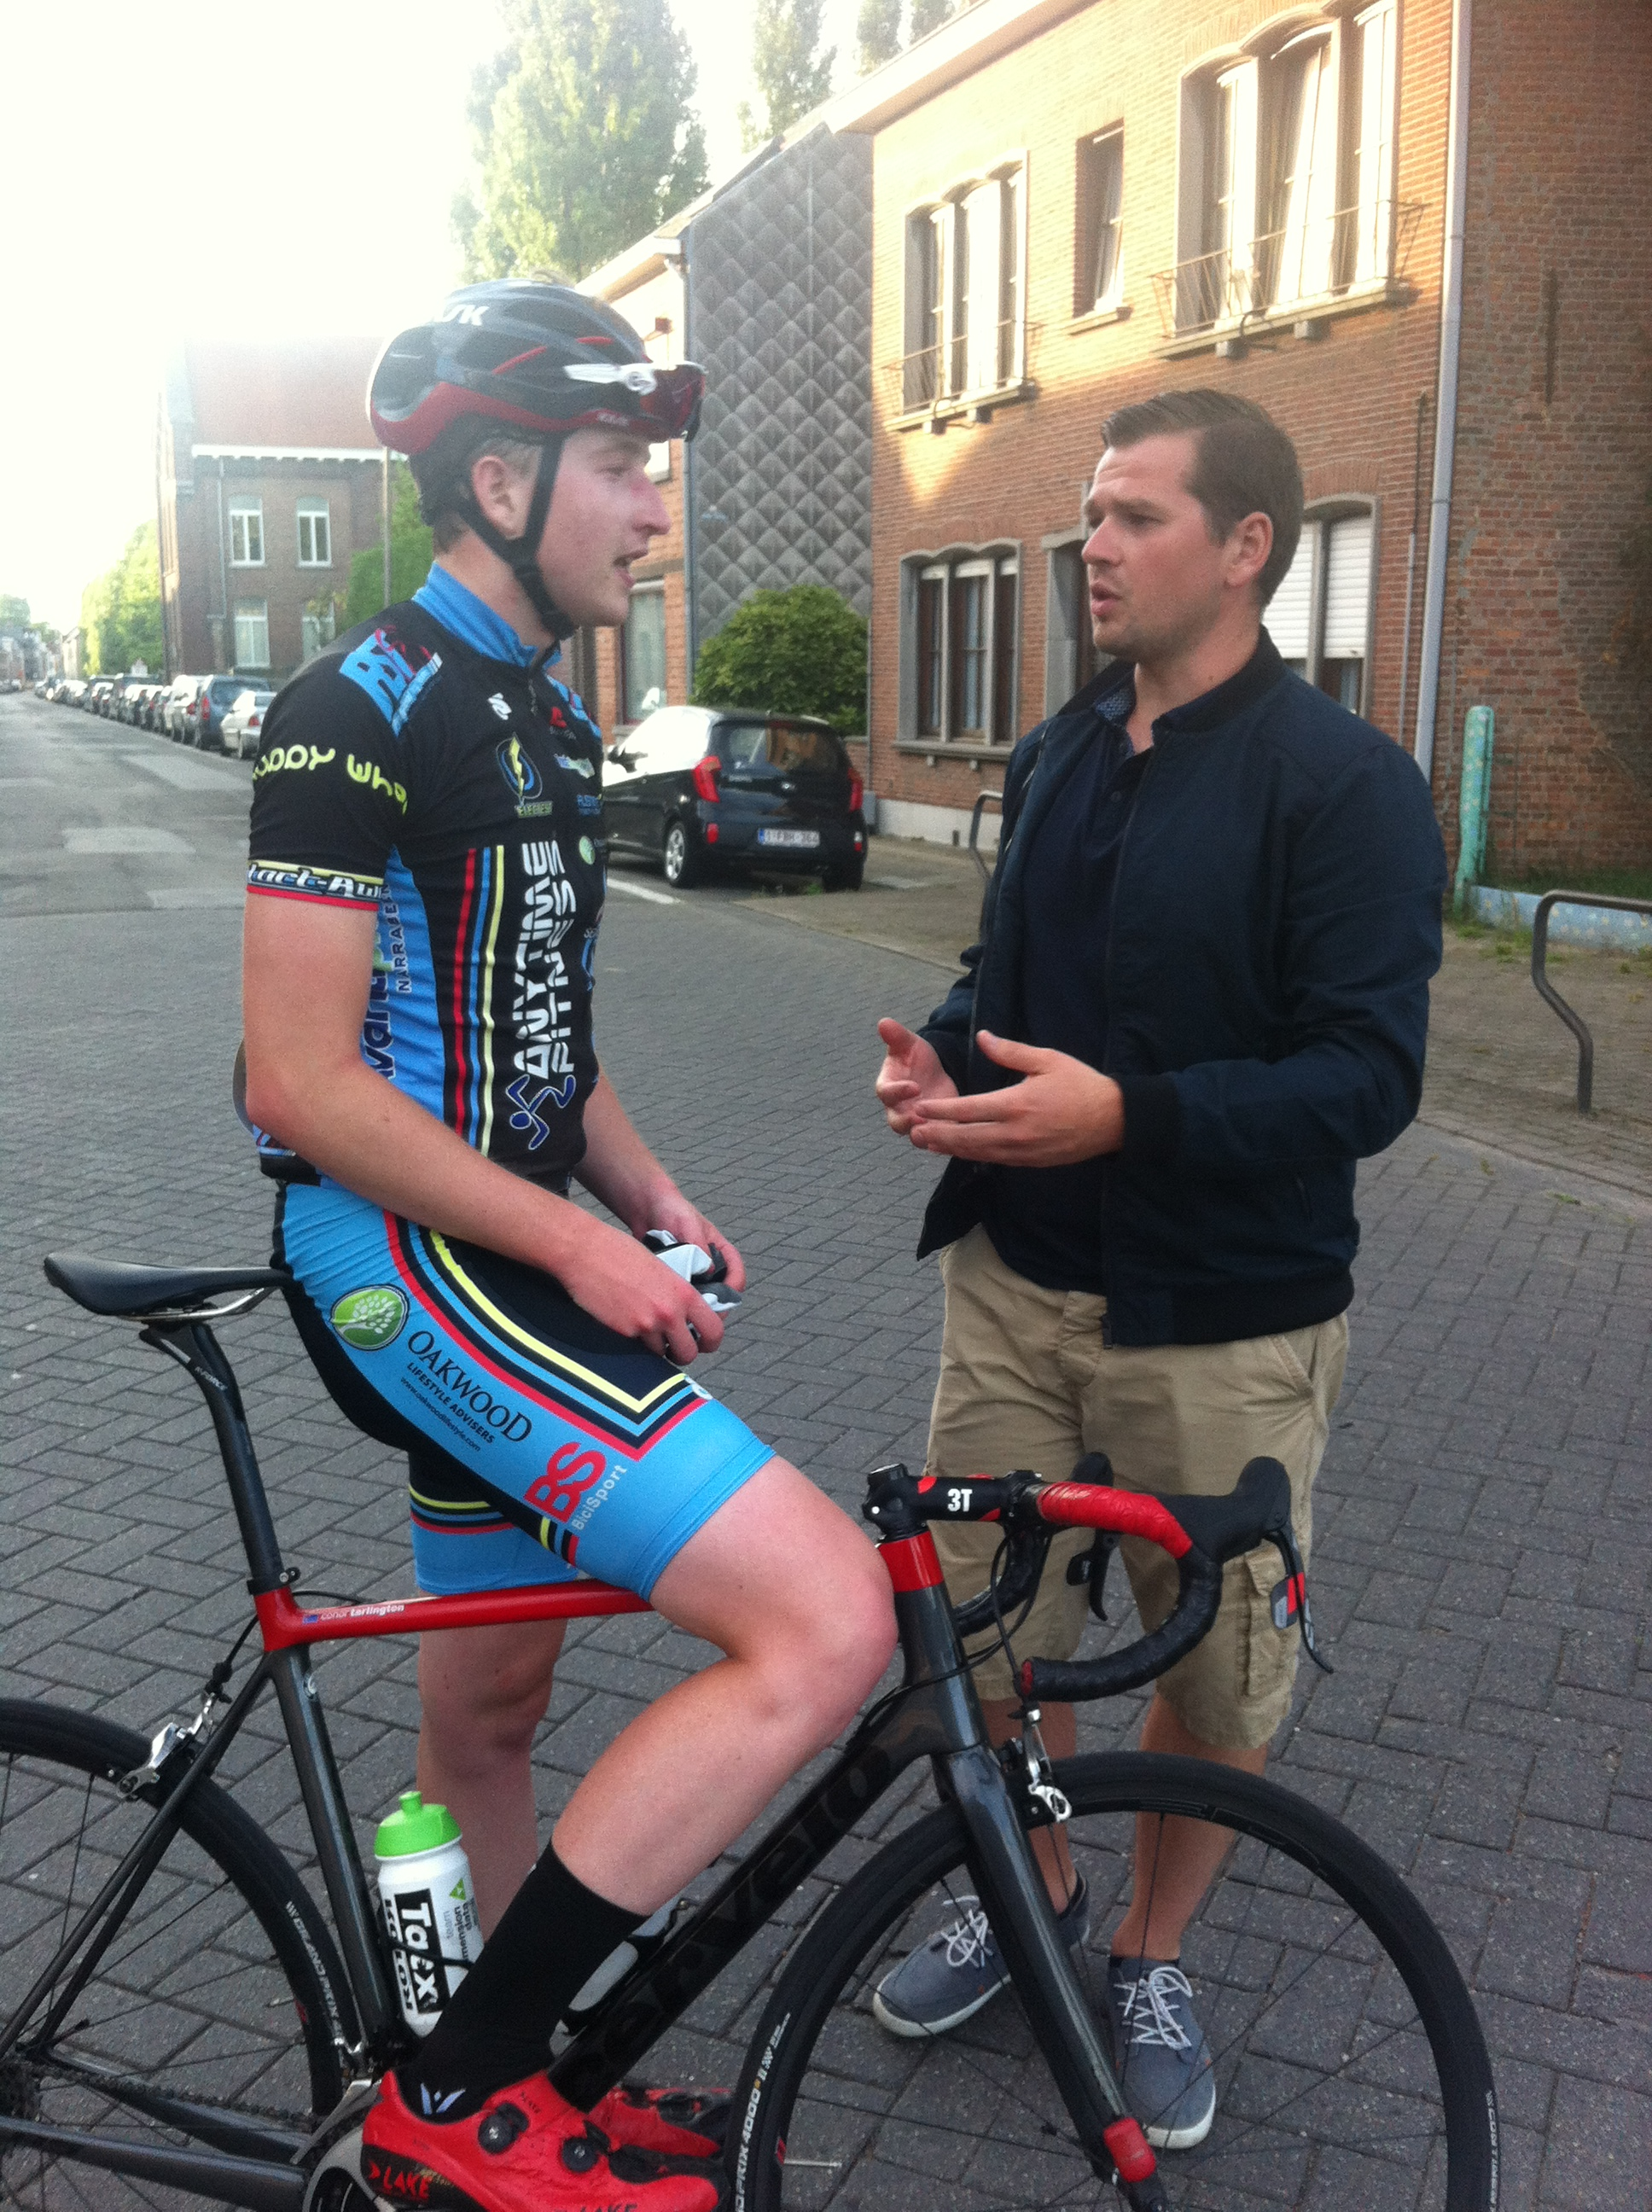 Conor & Maarten Verhulst after the finish discussing how to split the 3 Euro prizemoney